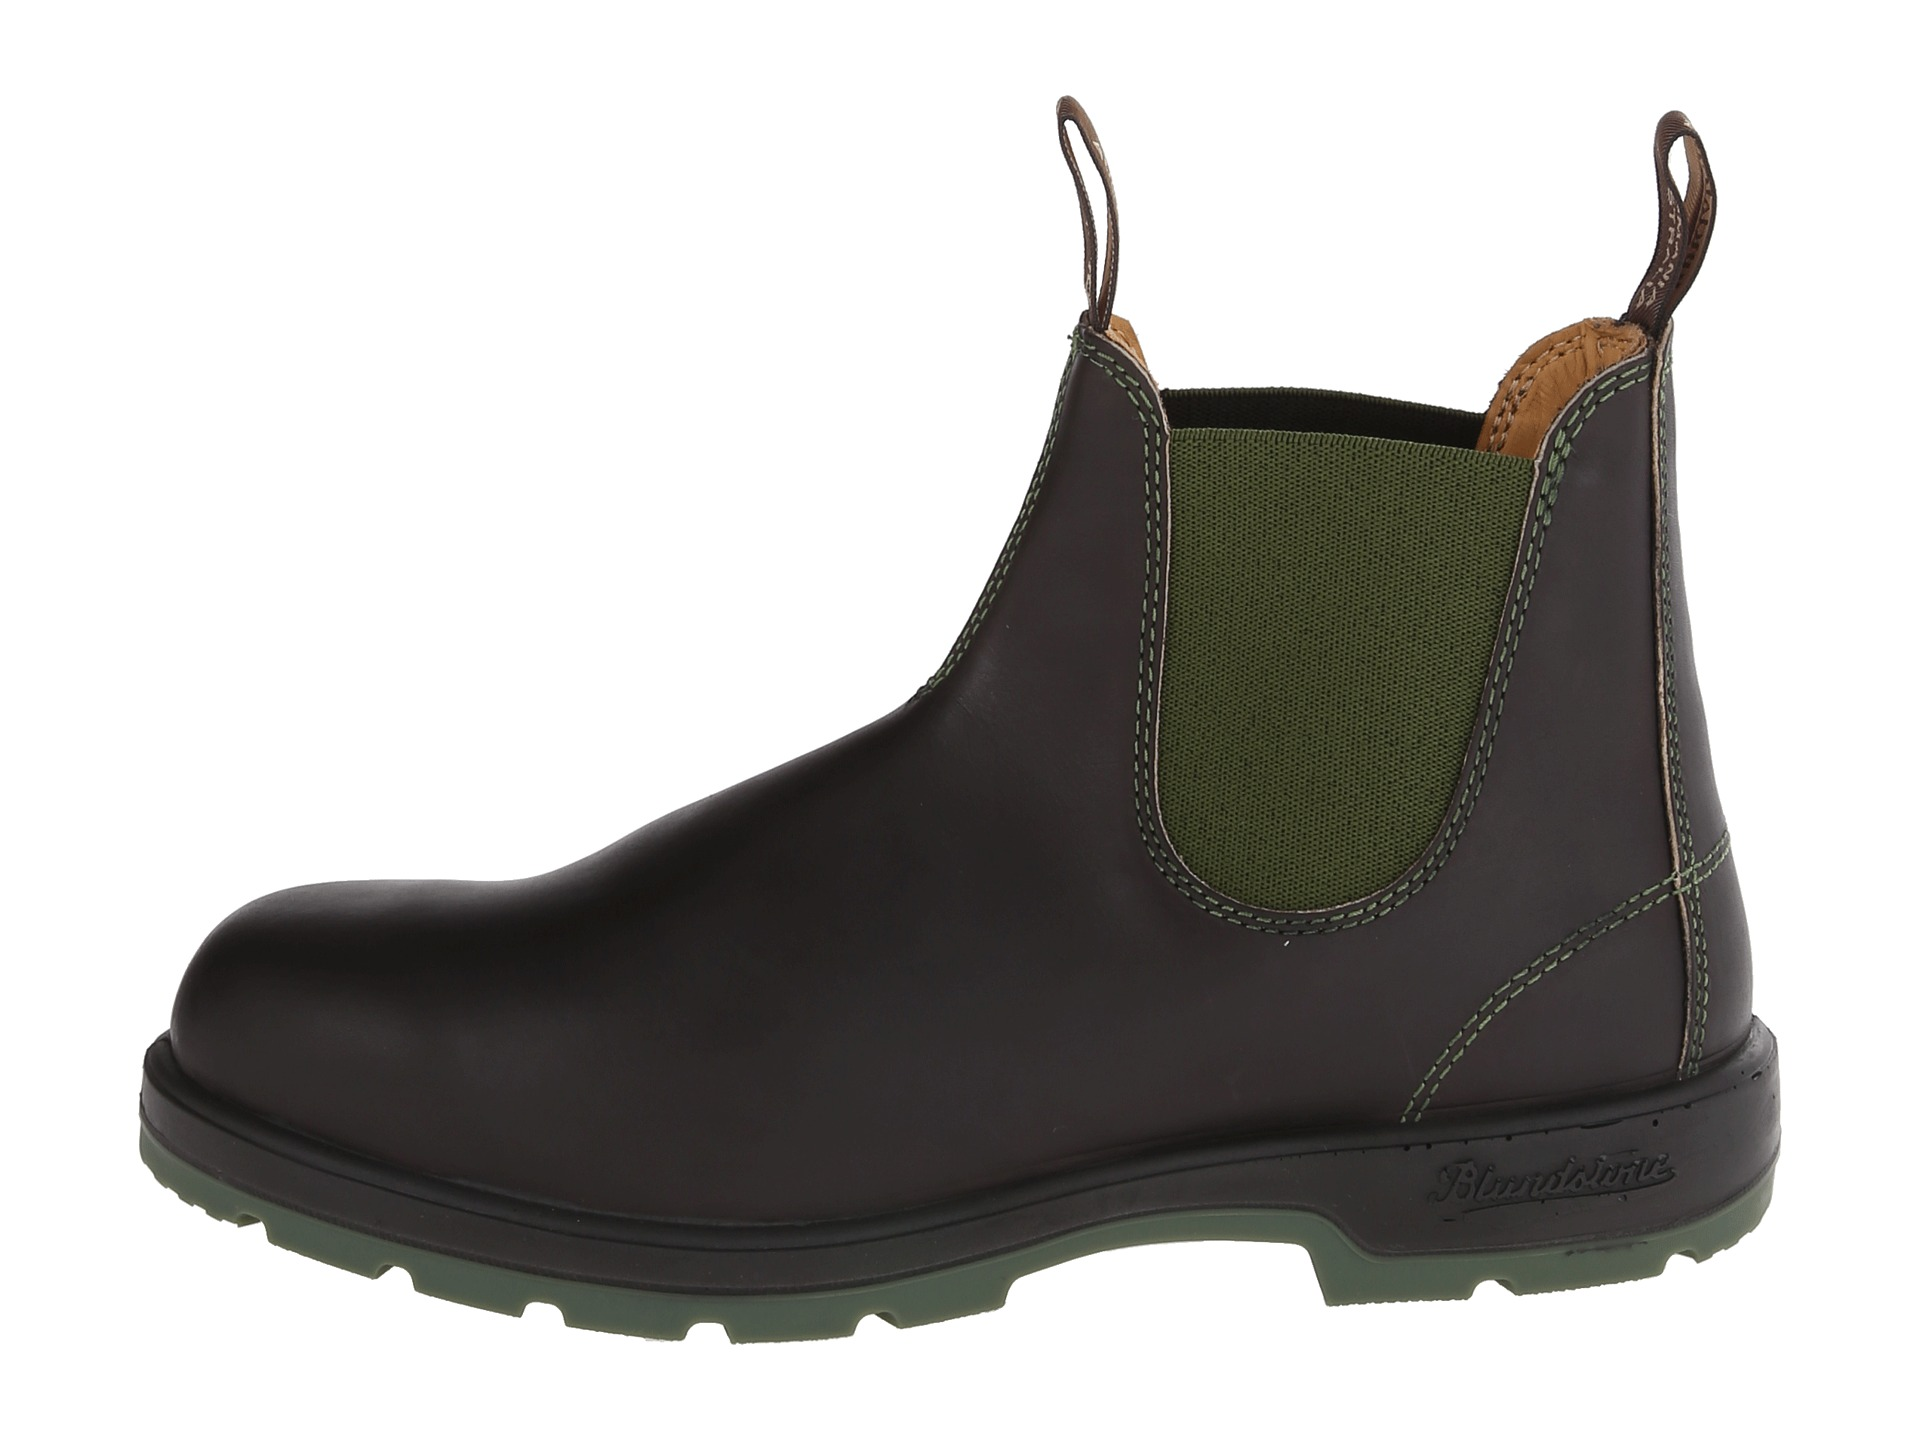 Blundstone 1402 Brown/Olive - Zappos.com Free Shipping BOTH Ways